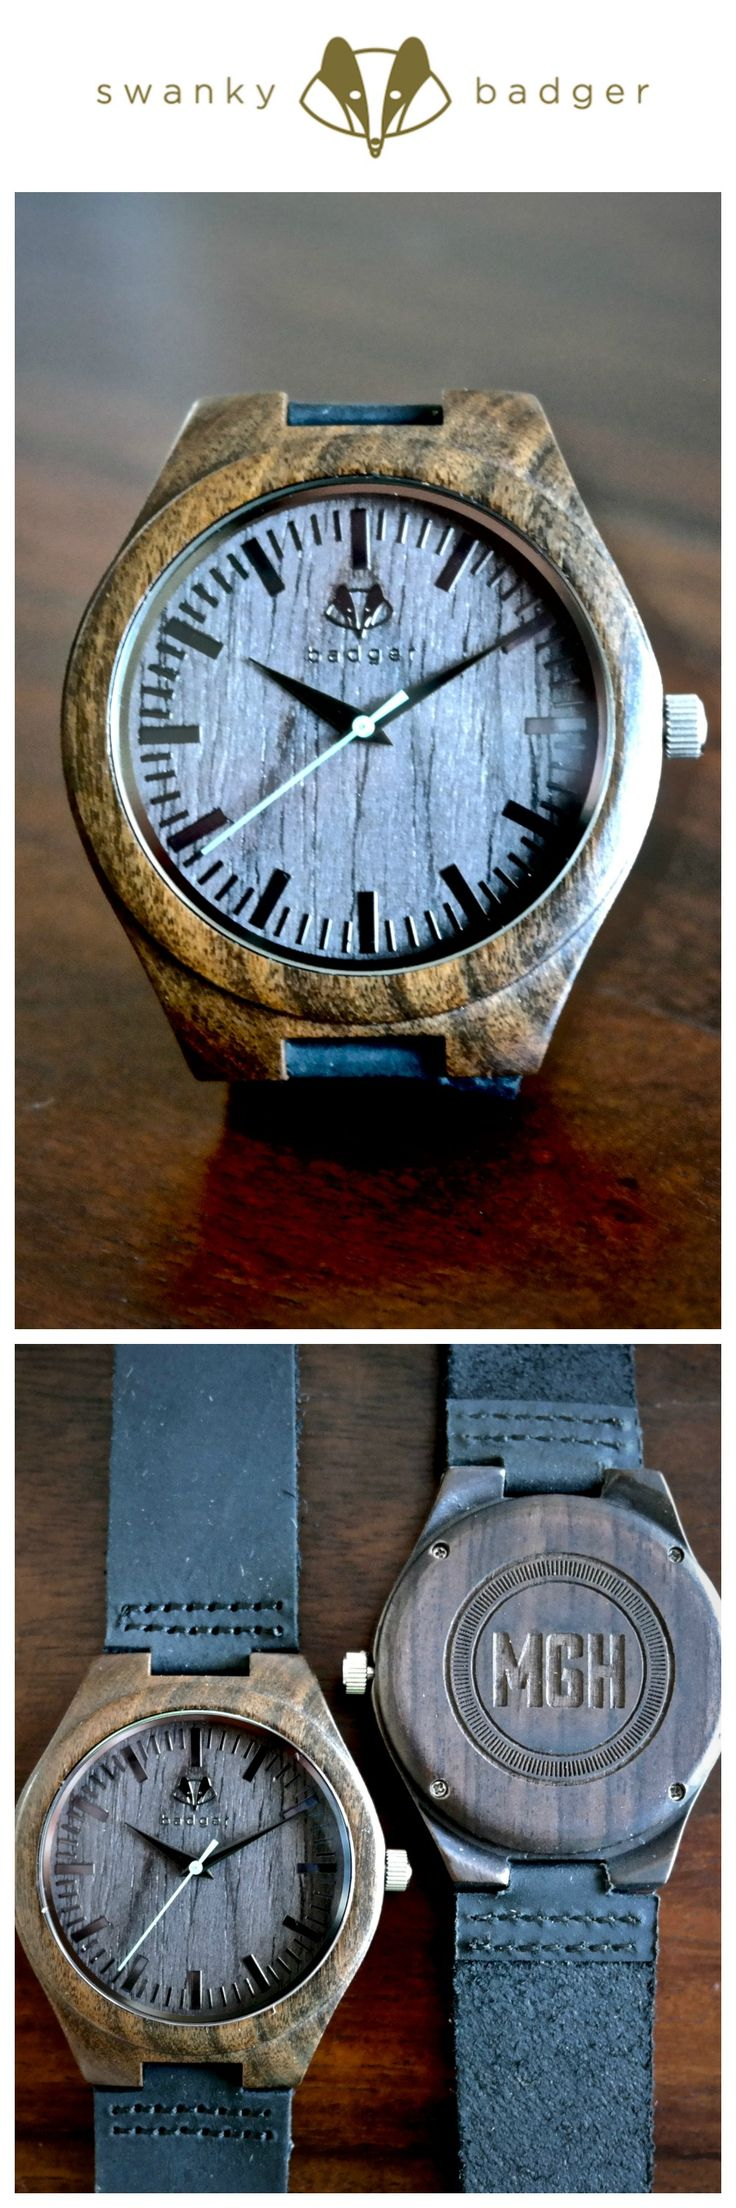 Stylish Personalized Sandalwood watch from Swanky Badger www.swankybadger.com  - great gift for groom or groomsmen https://swankybadger.com/collections/watches/products/copy-of-bamboo-watch-initials-1